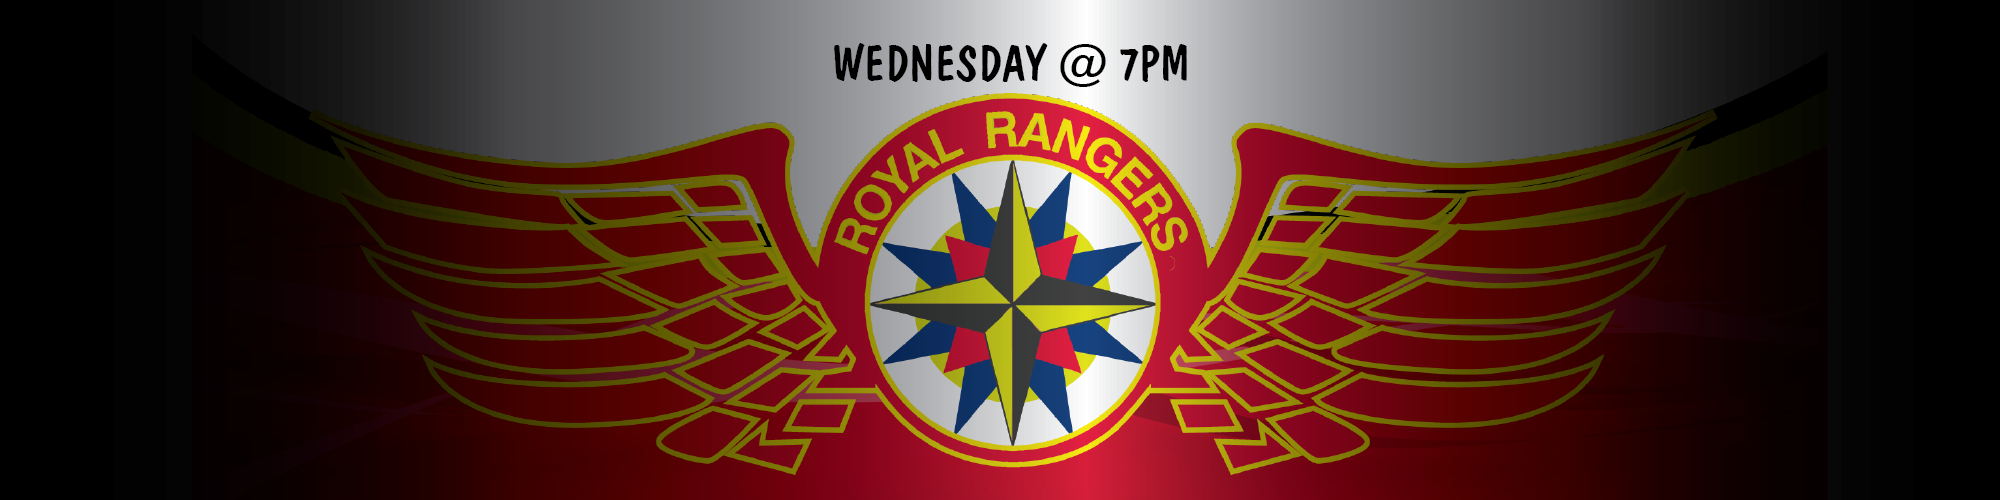 Royal Rangers Ministry